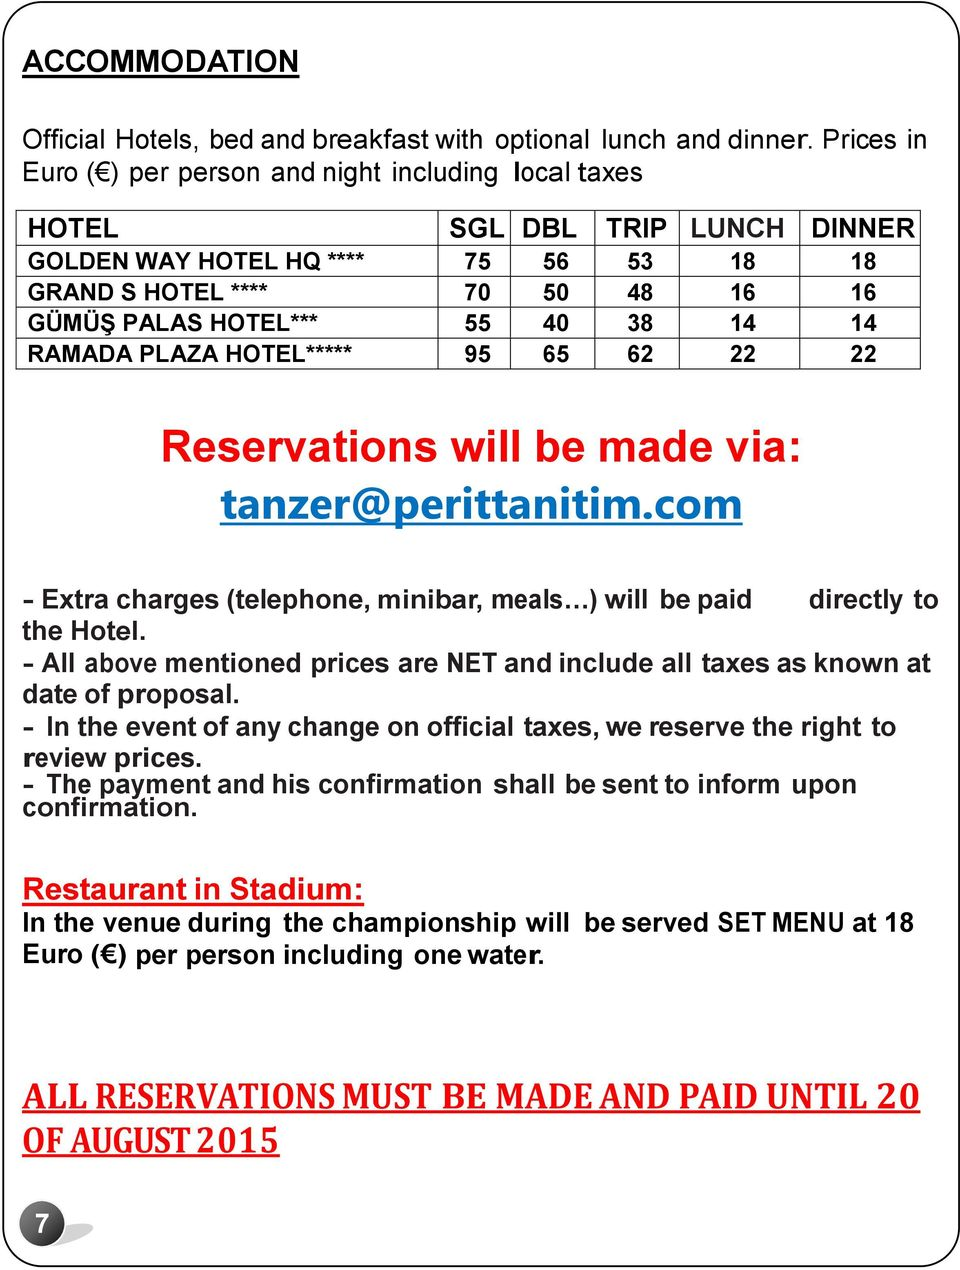 14 14 RAMADA PLAZA HOTEL***** 95 65 62 22 22 Reservations will be made via: tanzer@perittanitim.com - Extra charges (telephone, minibar, meals ) will be paid directly to the Hotel.